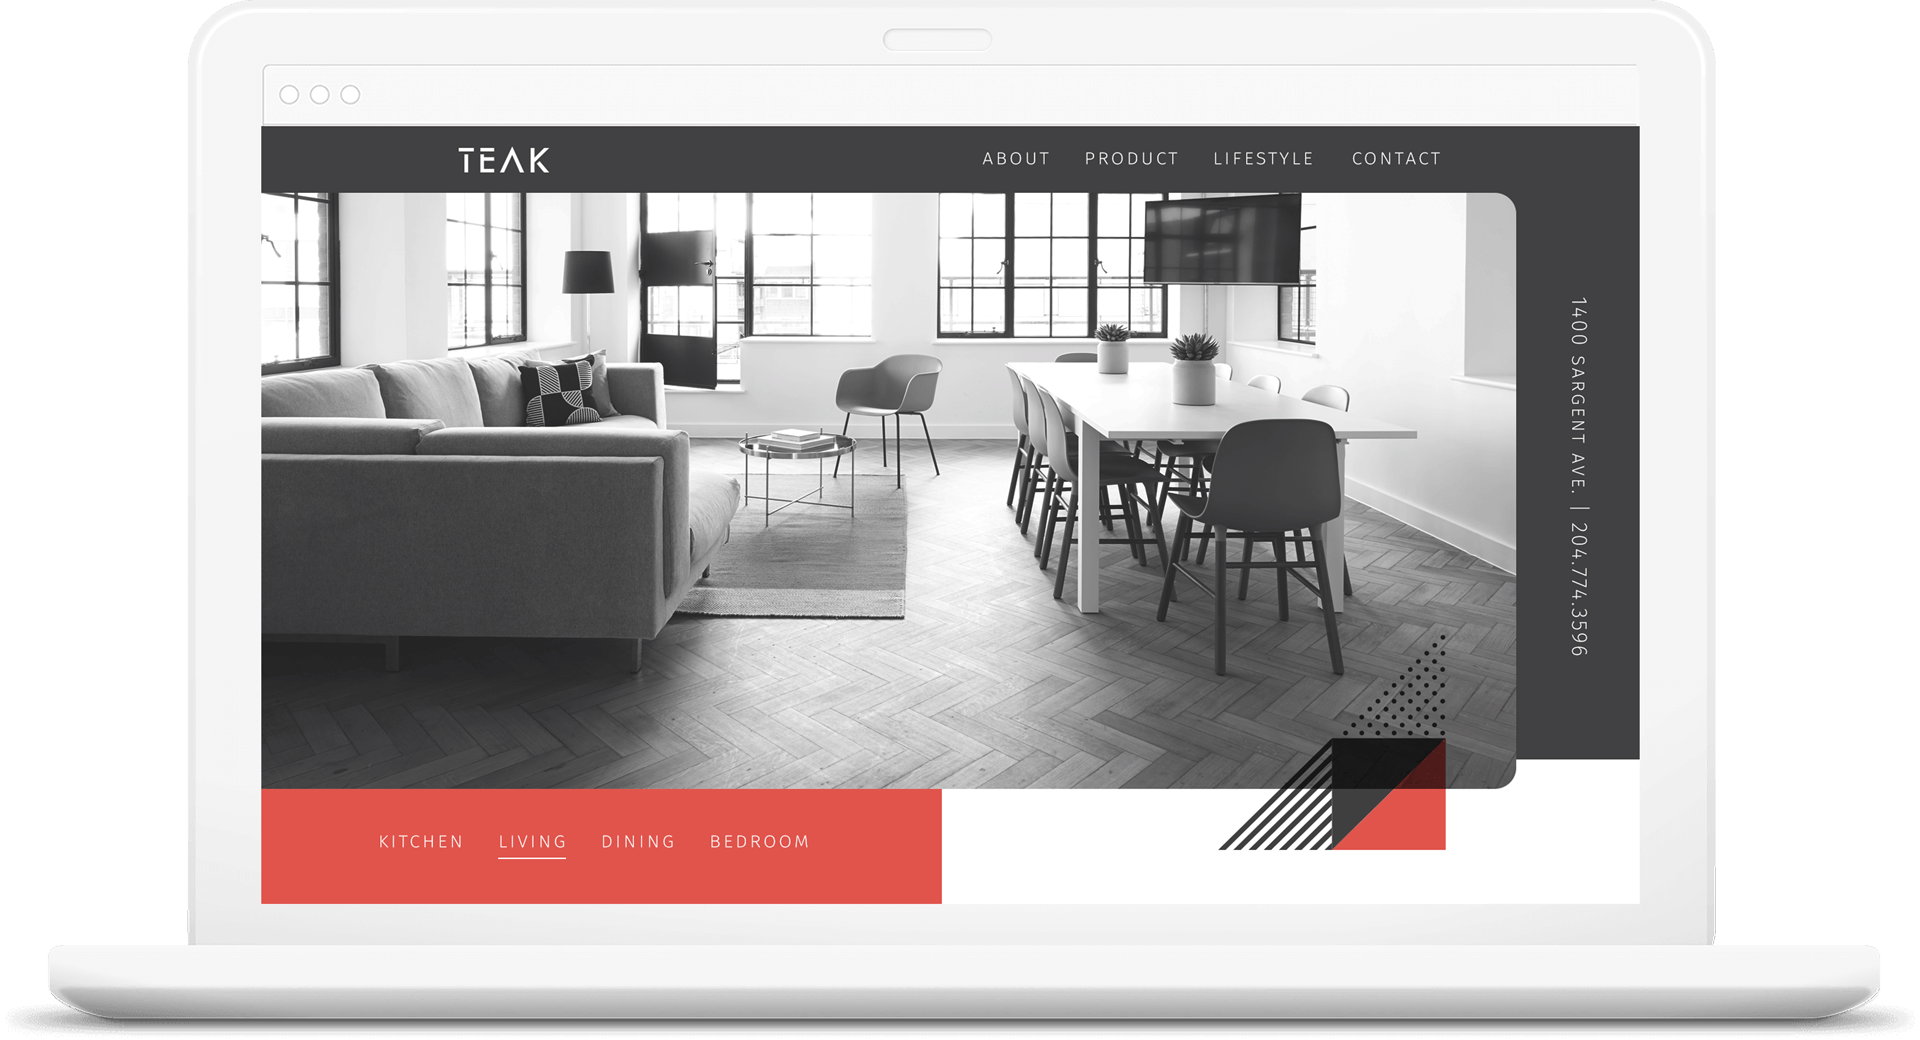 Website redesign for Teak Furniture